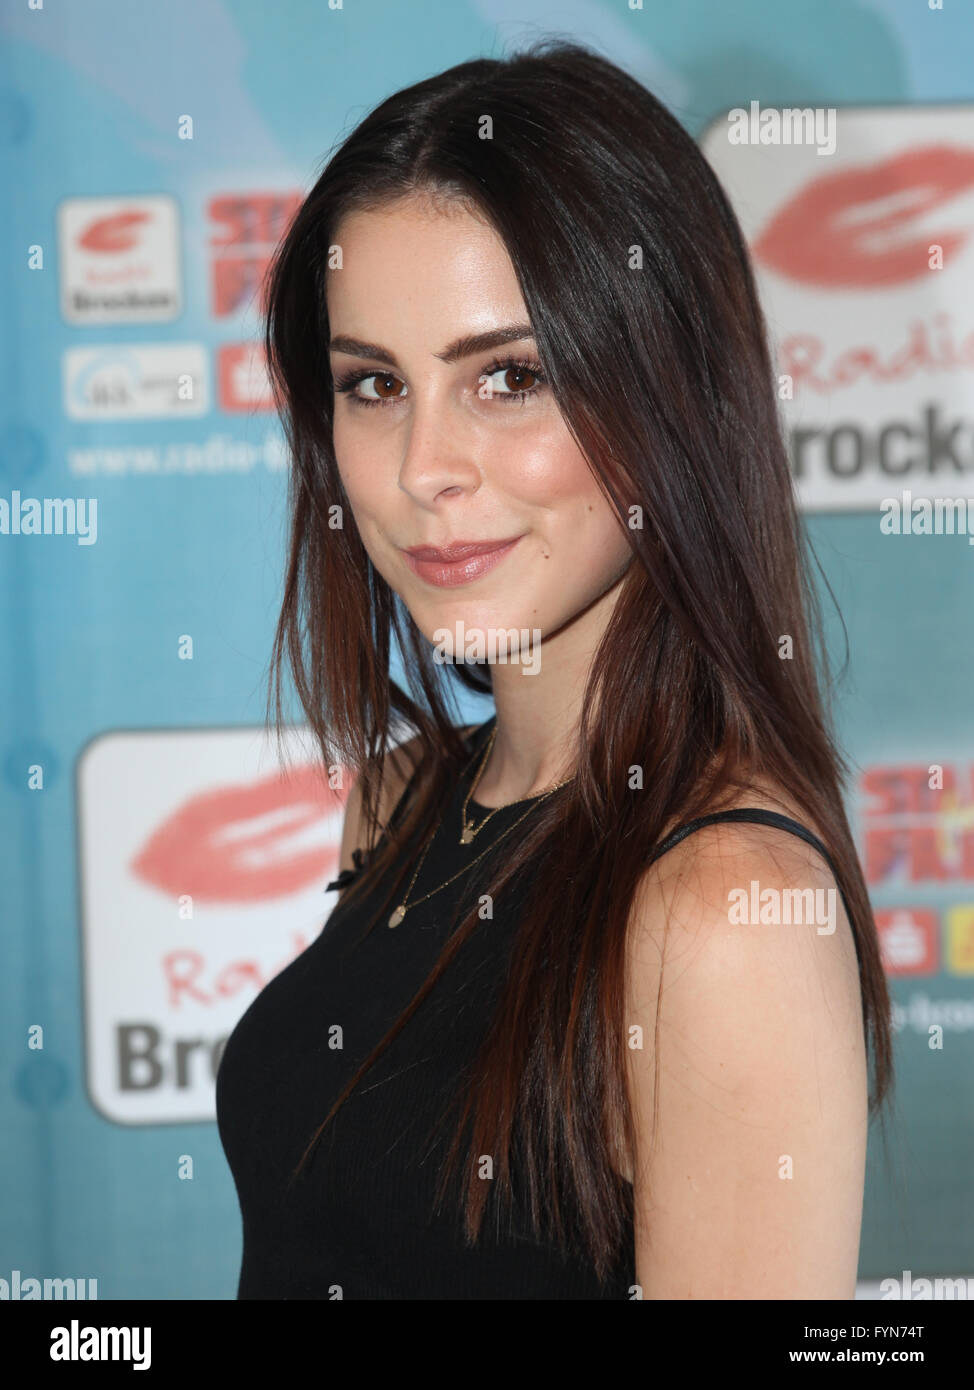 Lena Meyer Landrut Stock Photos Lena Meyer Landrut Stock Images